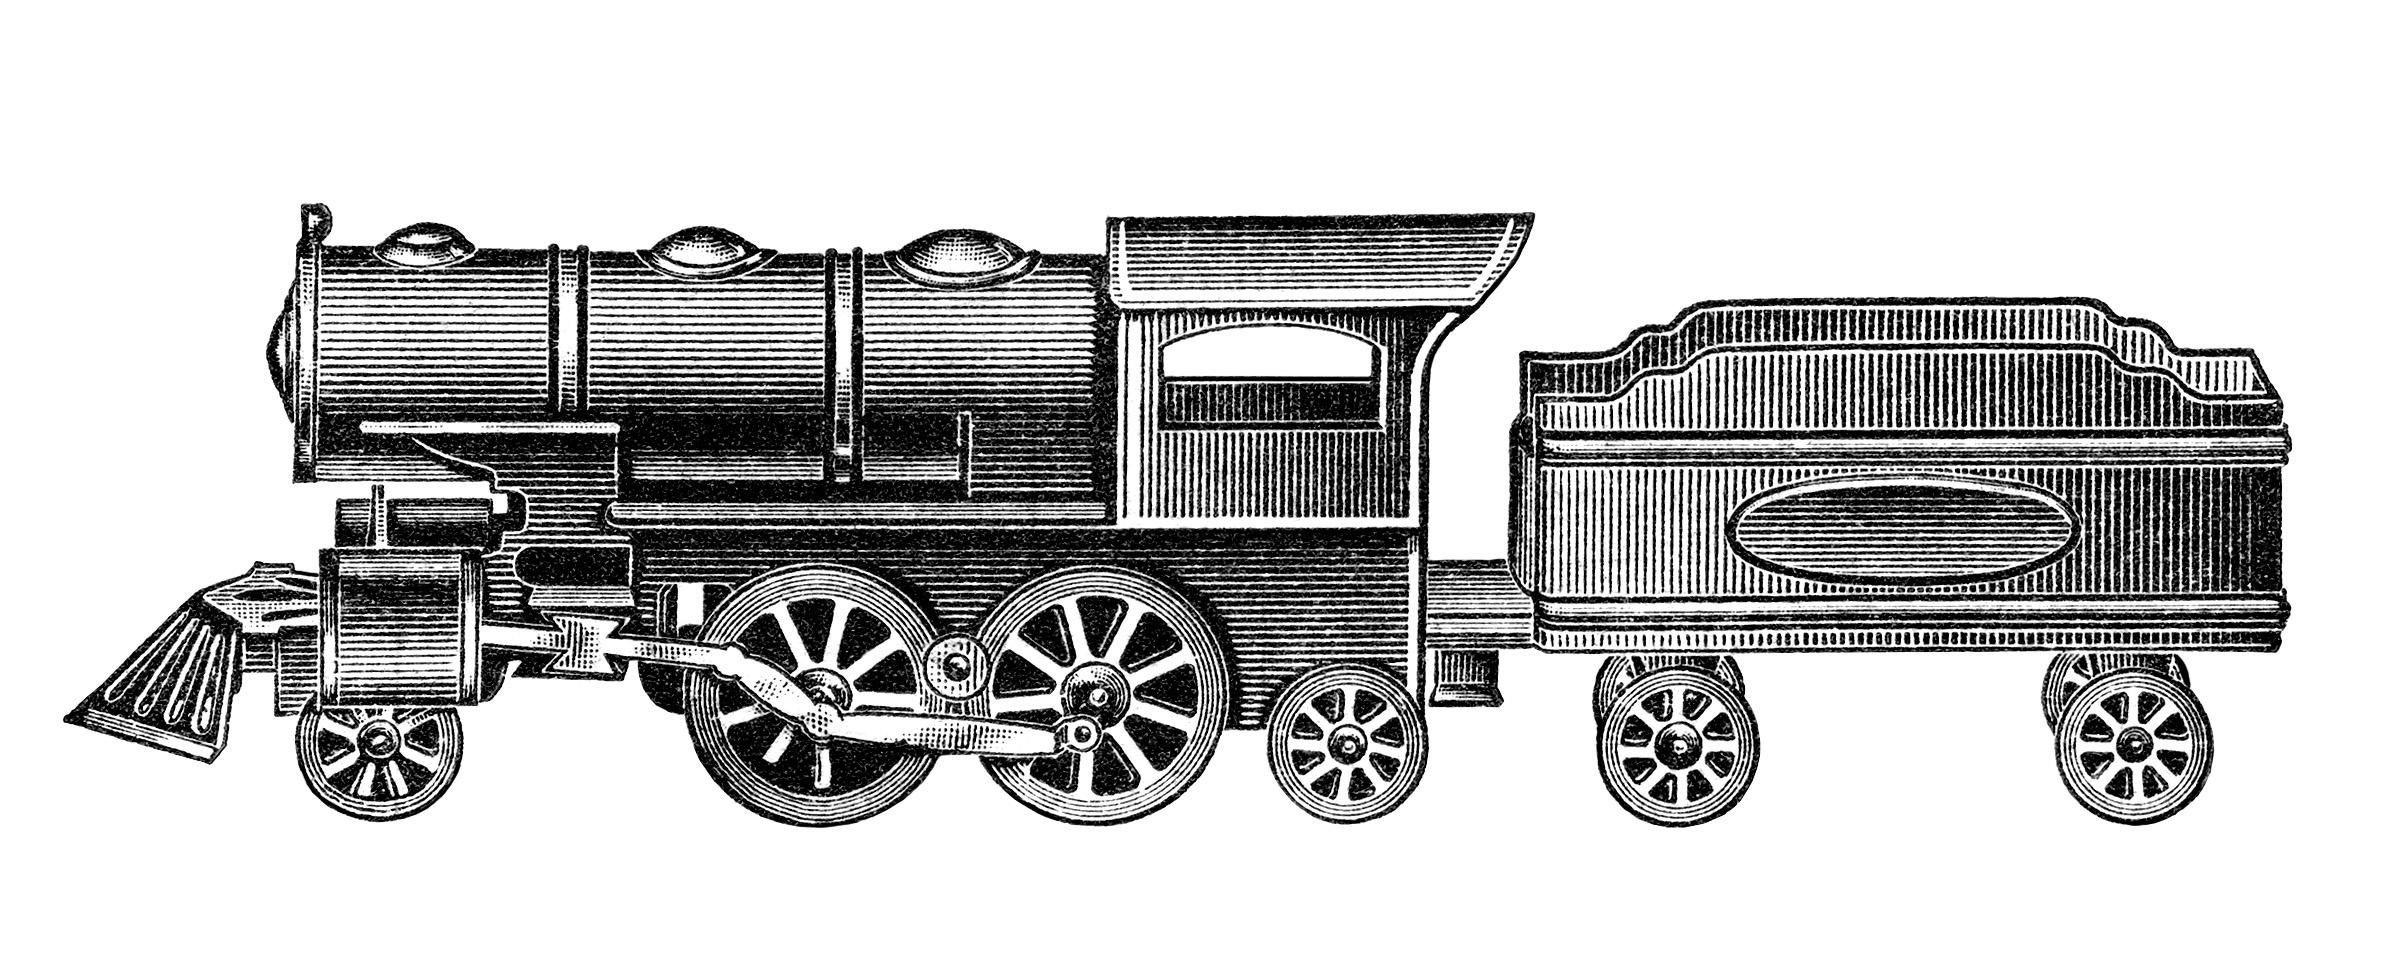 Old Toy Trains : Free vintage image toy train clip art old design shop